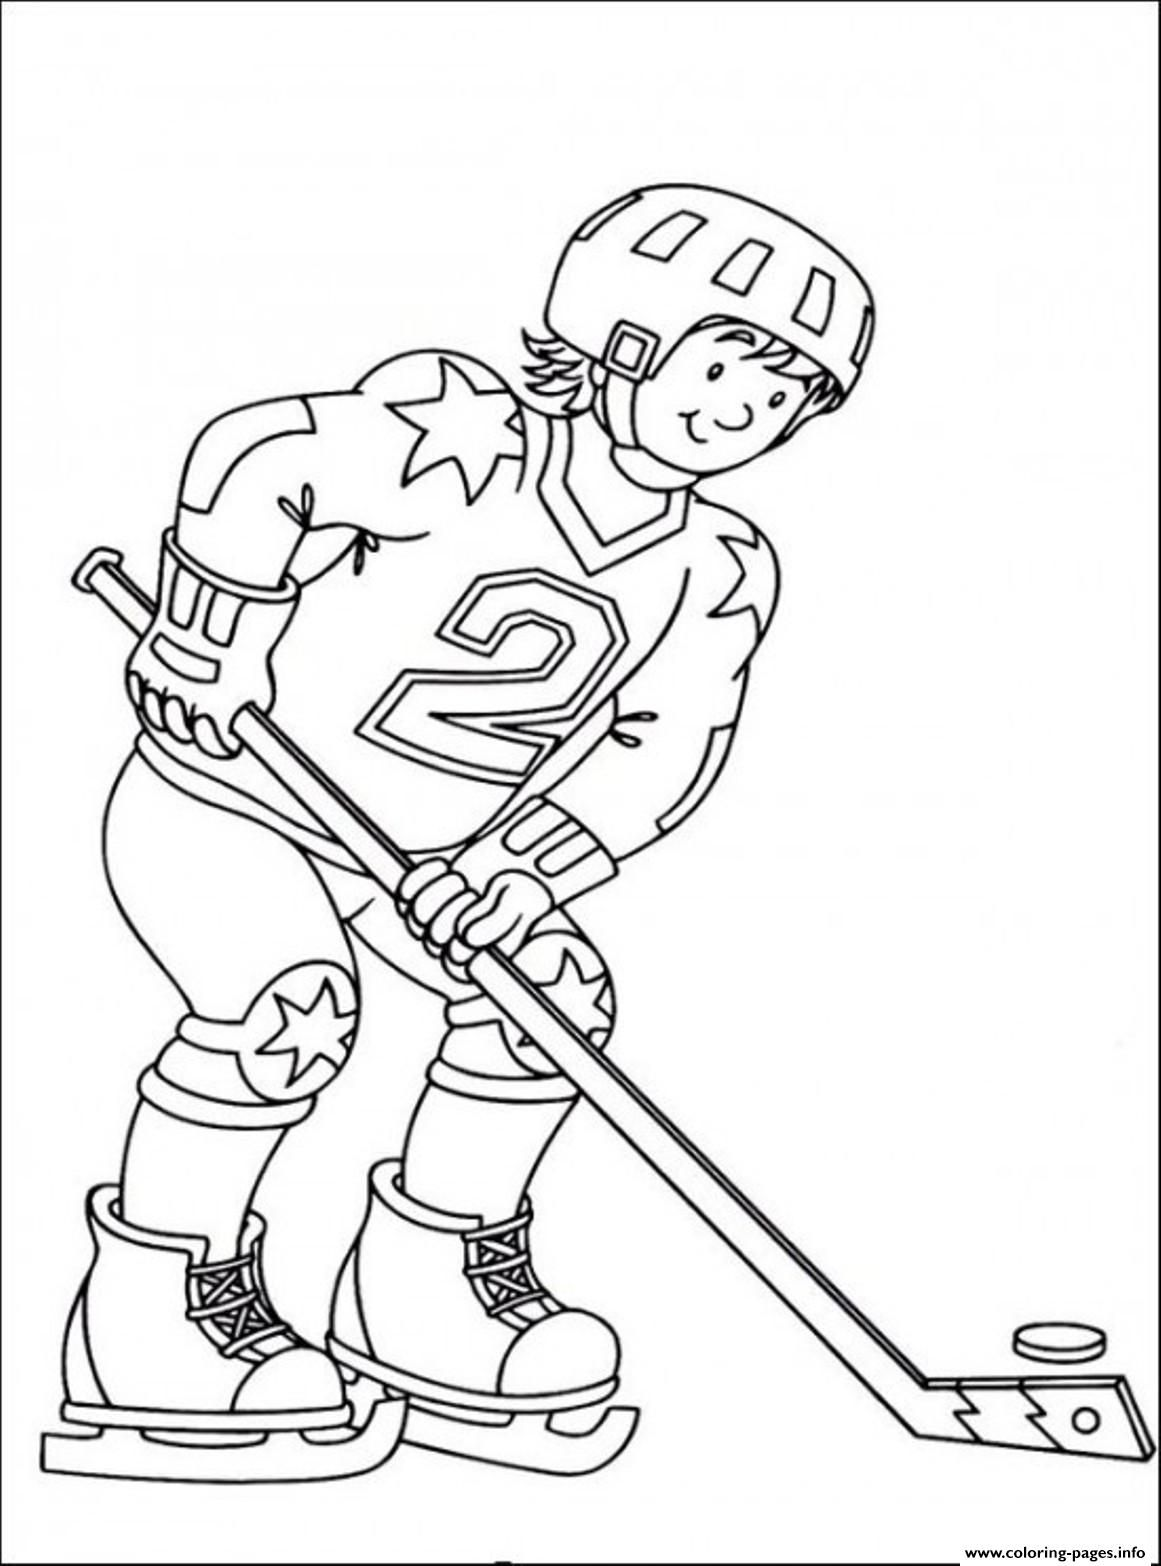 Print hockey sedbd coloring pages | Разукрашки | Pinterest | Deporte